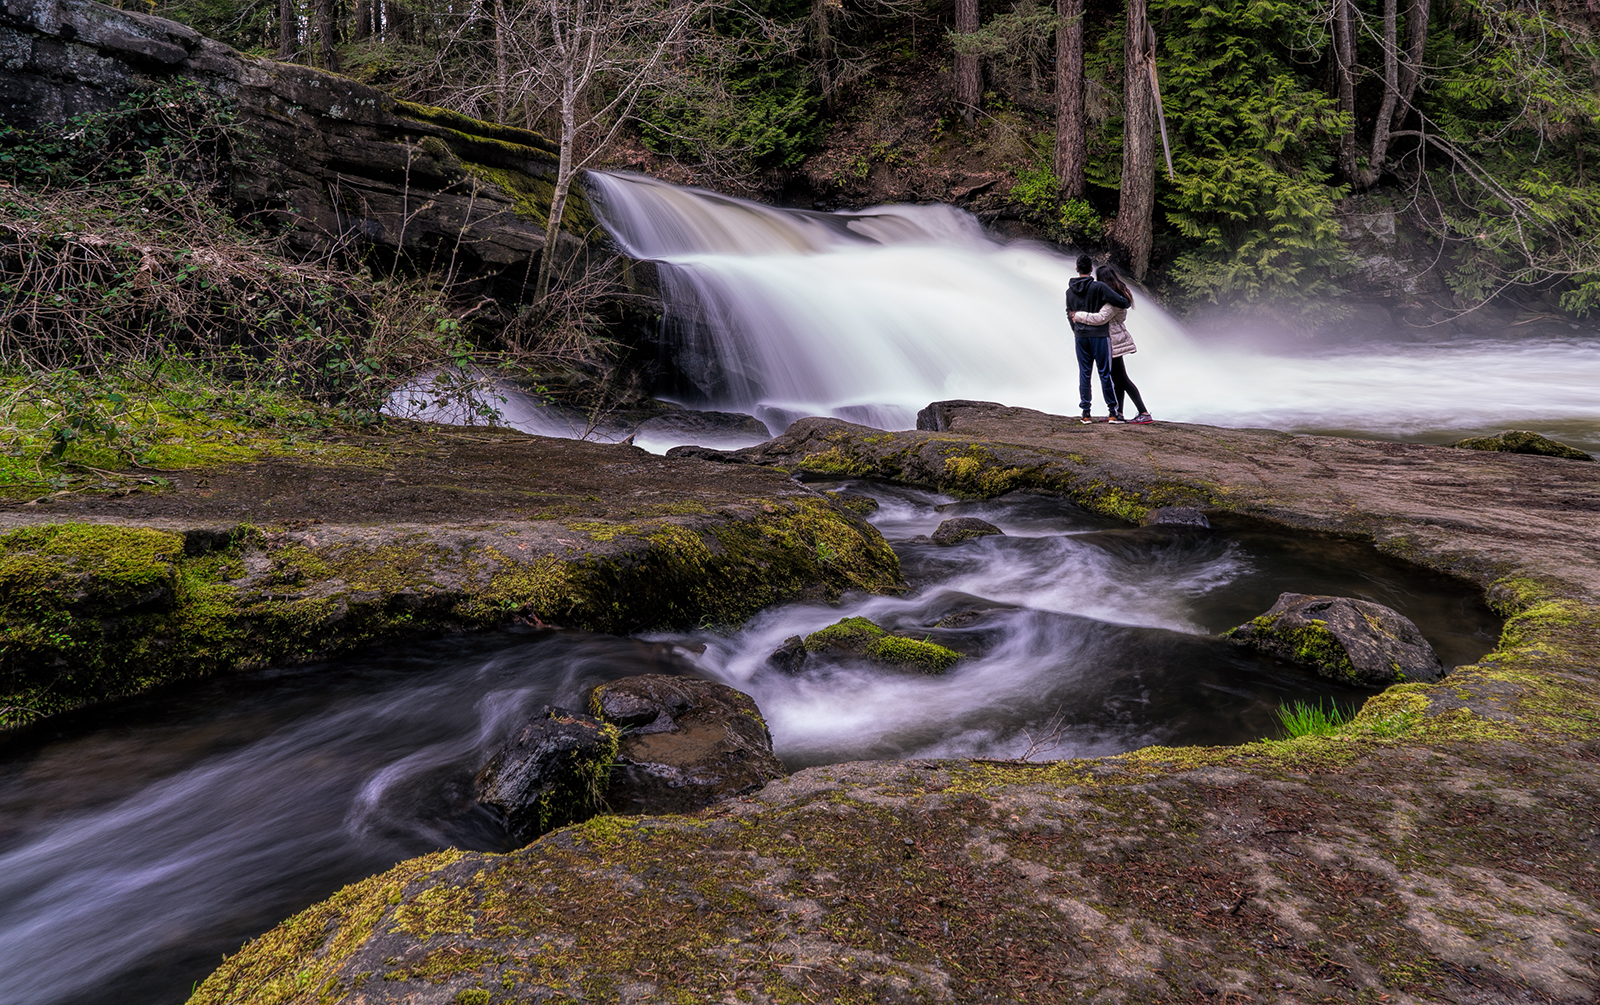 A young couple enjoys the rushing Millstone River